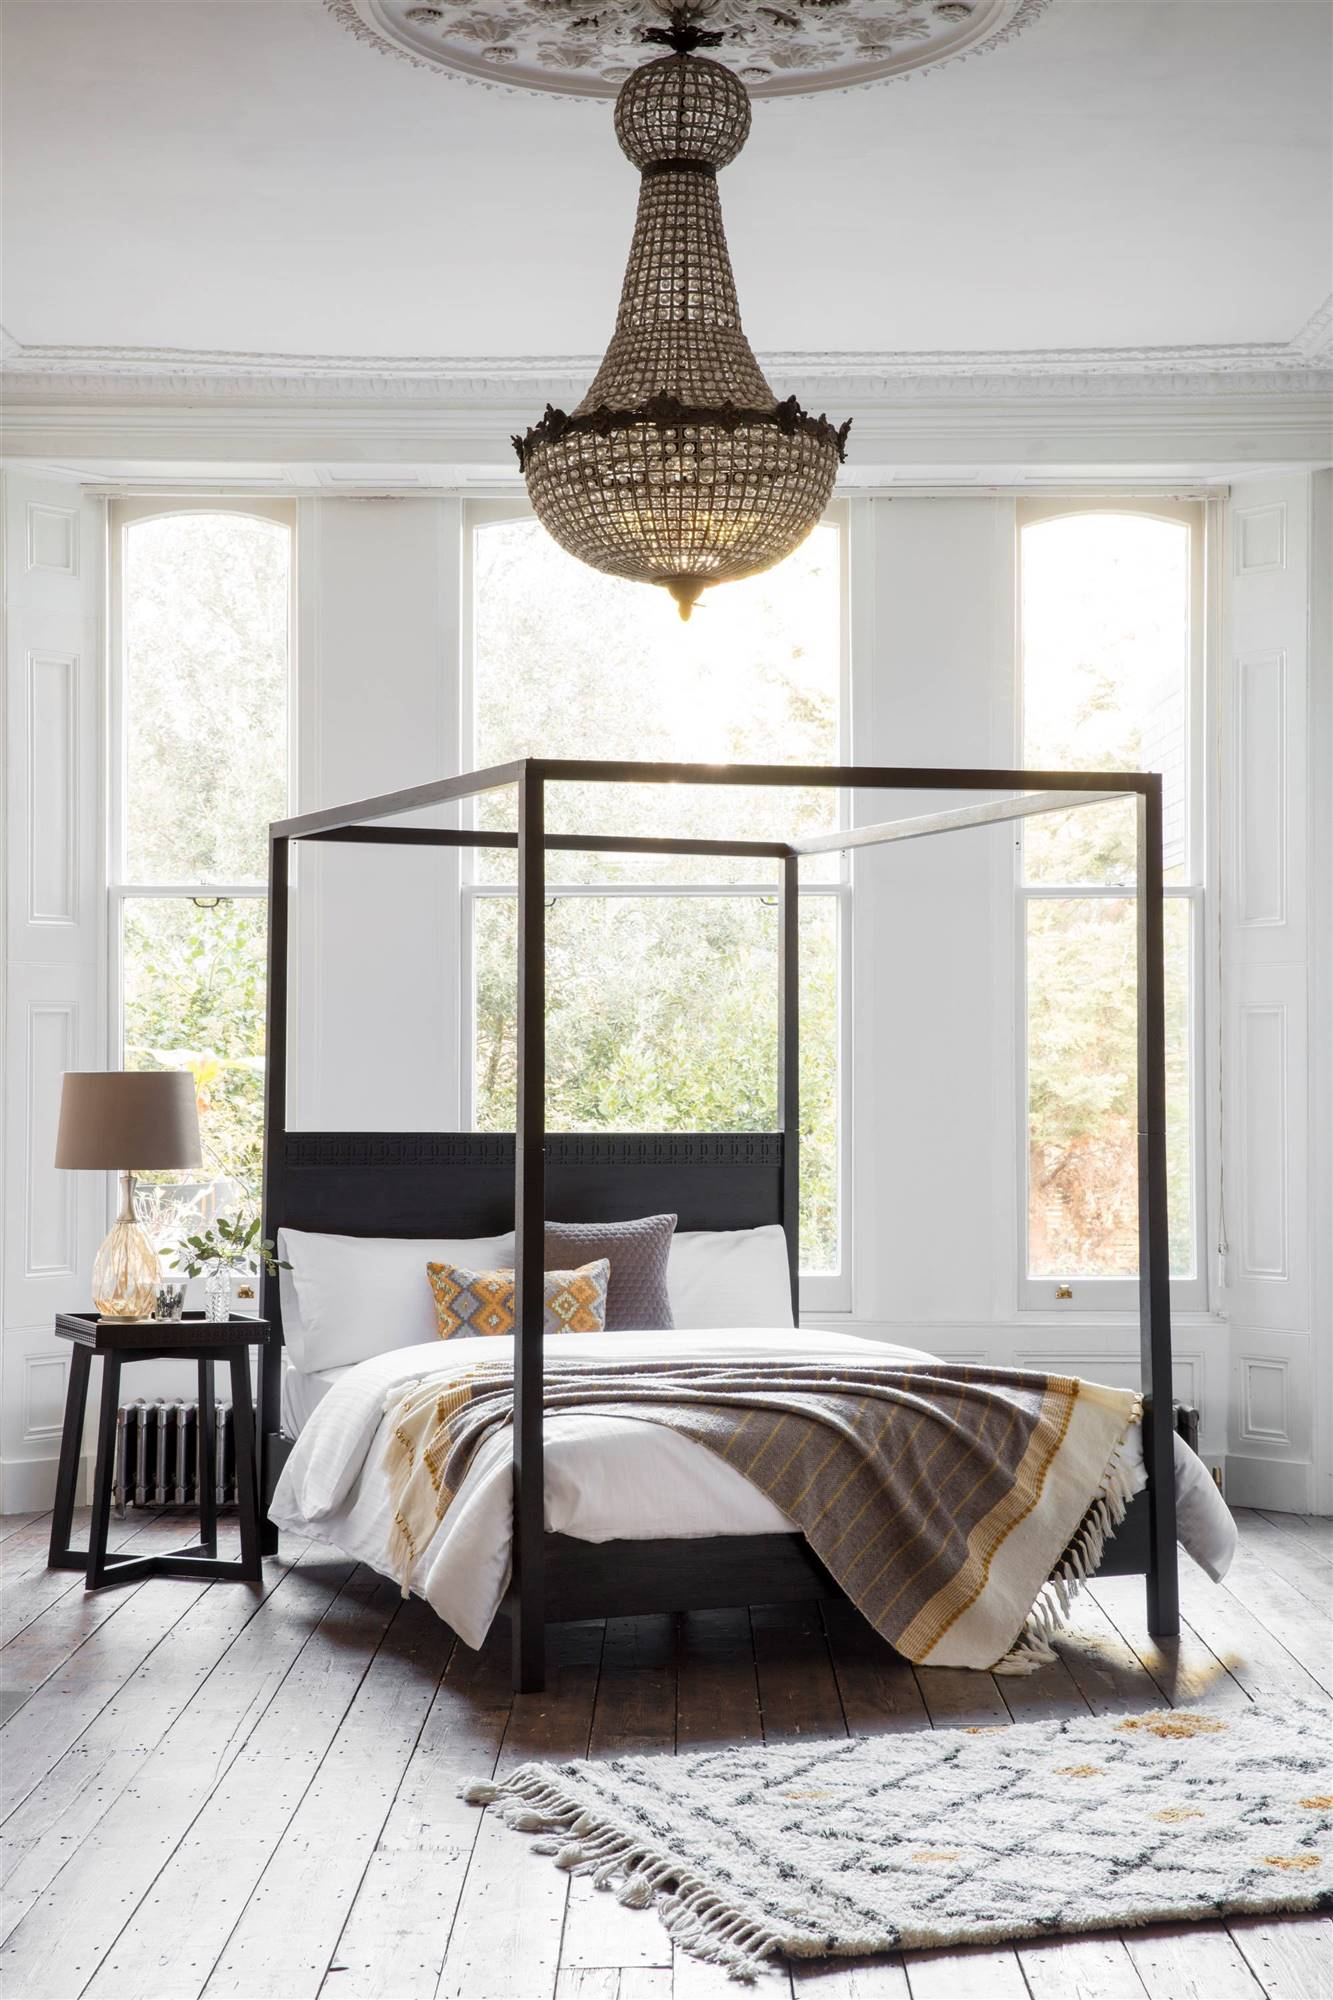 The Hedonist Black 4-Poster Bed - Lifestyle. Una imponente cama con dosel